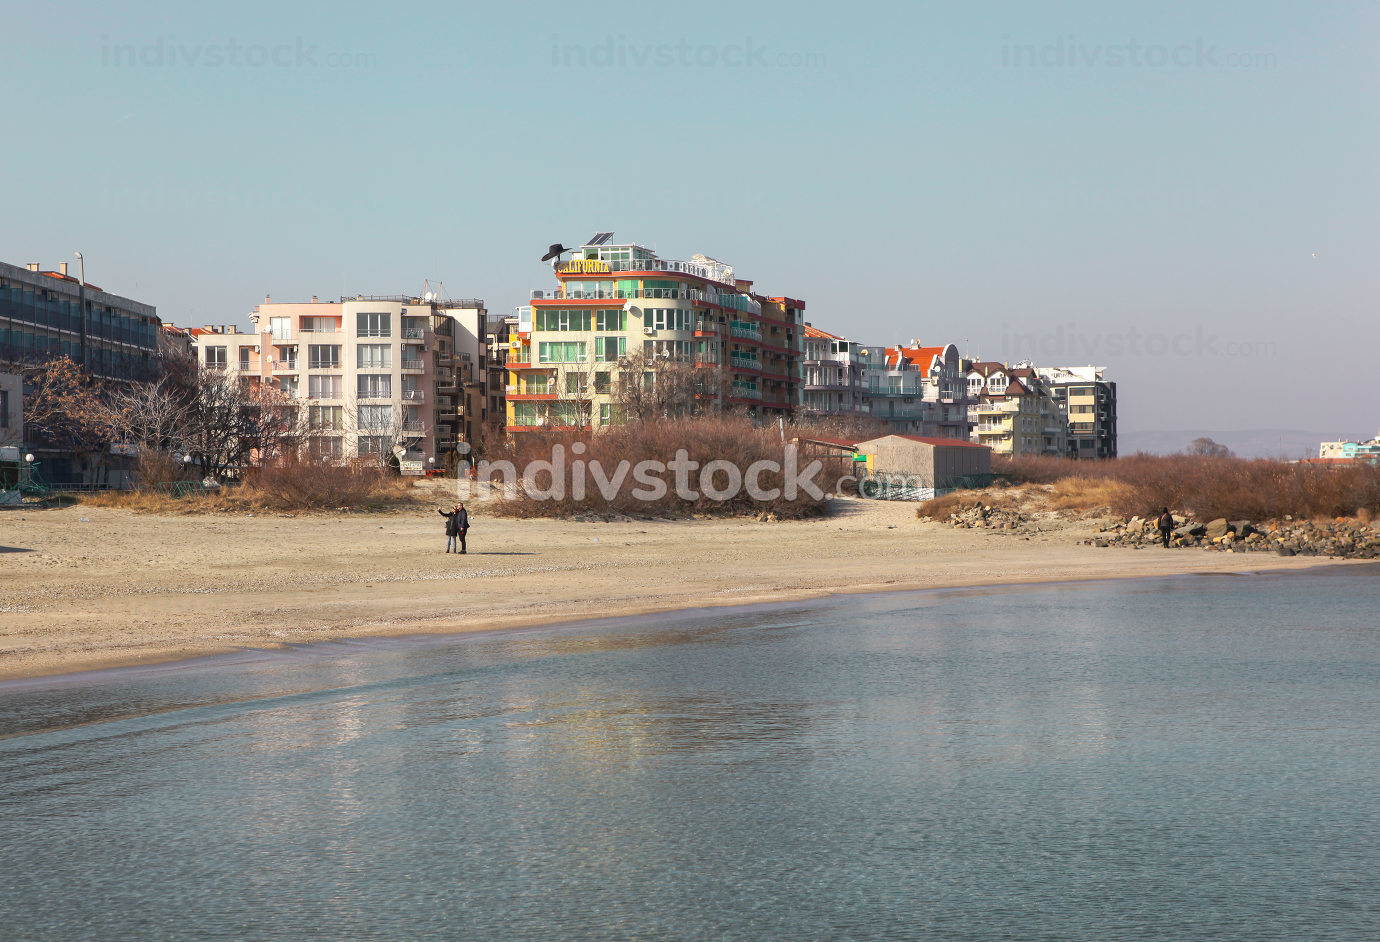 Pomorie, Bulgaria - January 26, 2020: Pomorie Is A Town And Seaside Resort In Southeastern Bulgaria, Located On A Narrow Rocky Peninsula In Burgas Bay On The Southern Bulgarian Black Sea Coast.